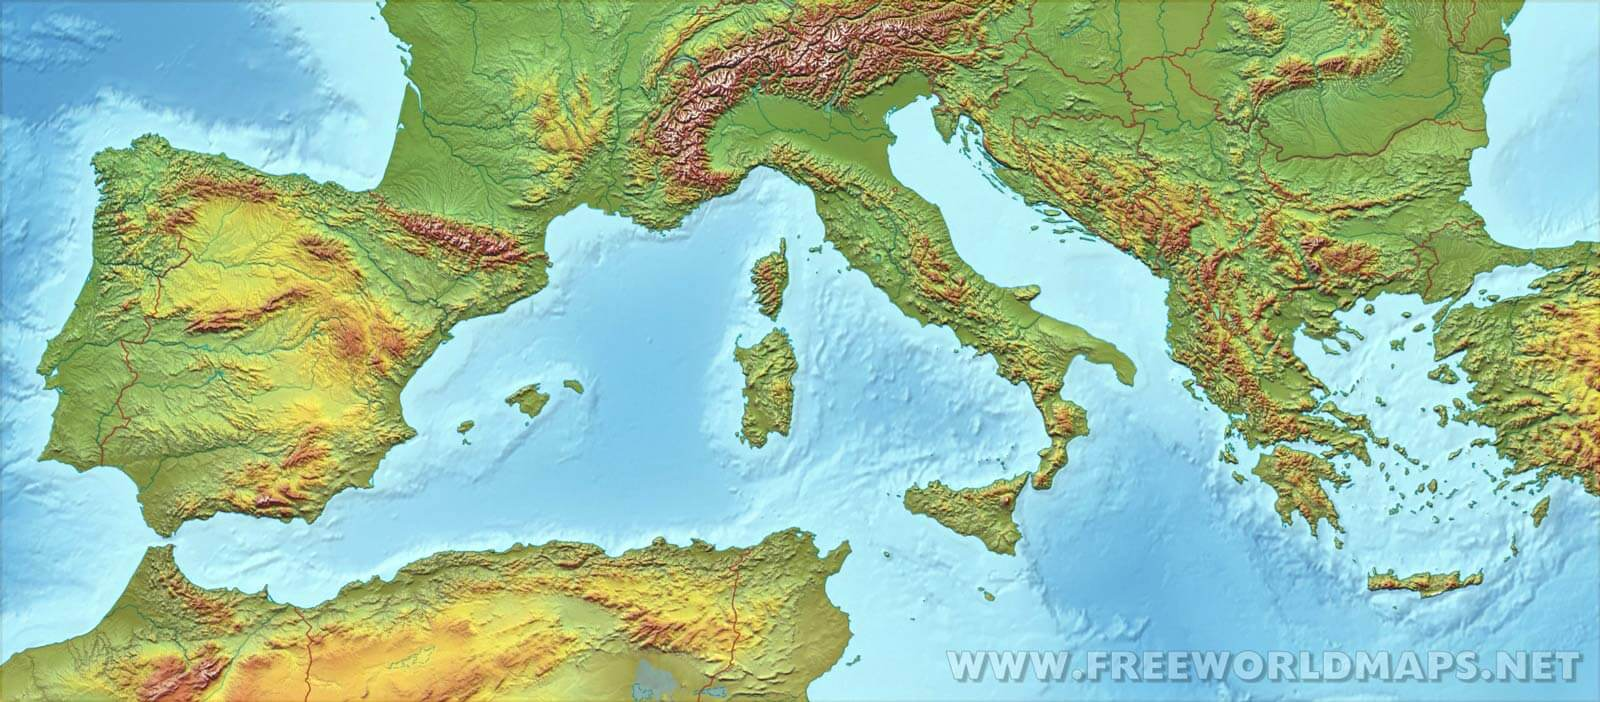 Southern Europe Physical Map